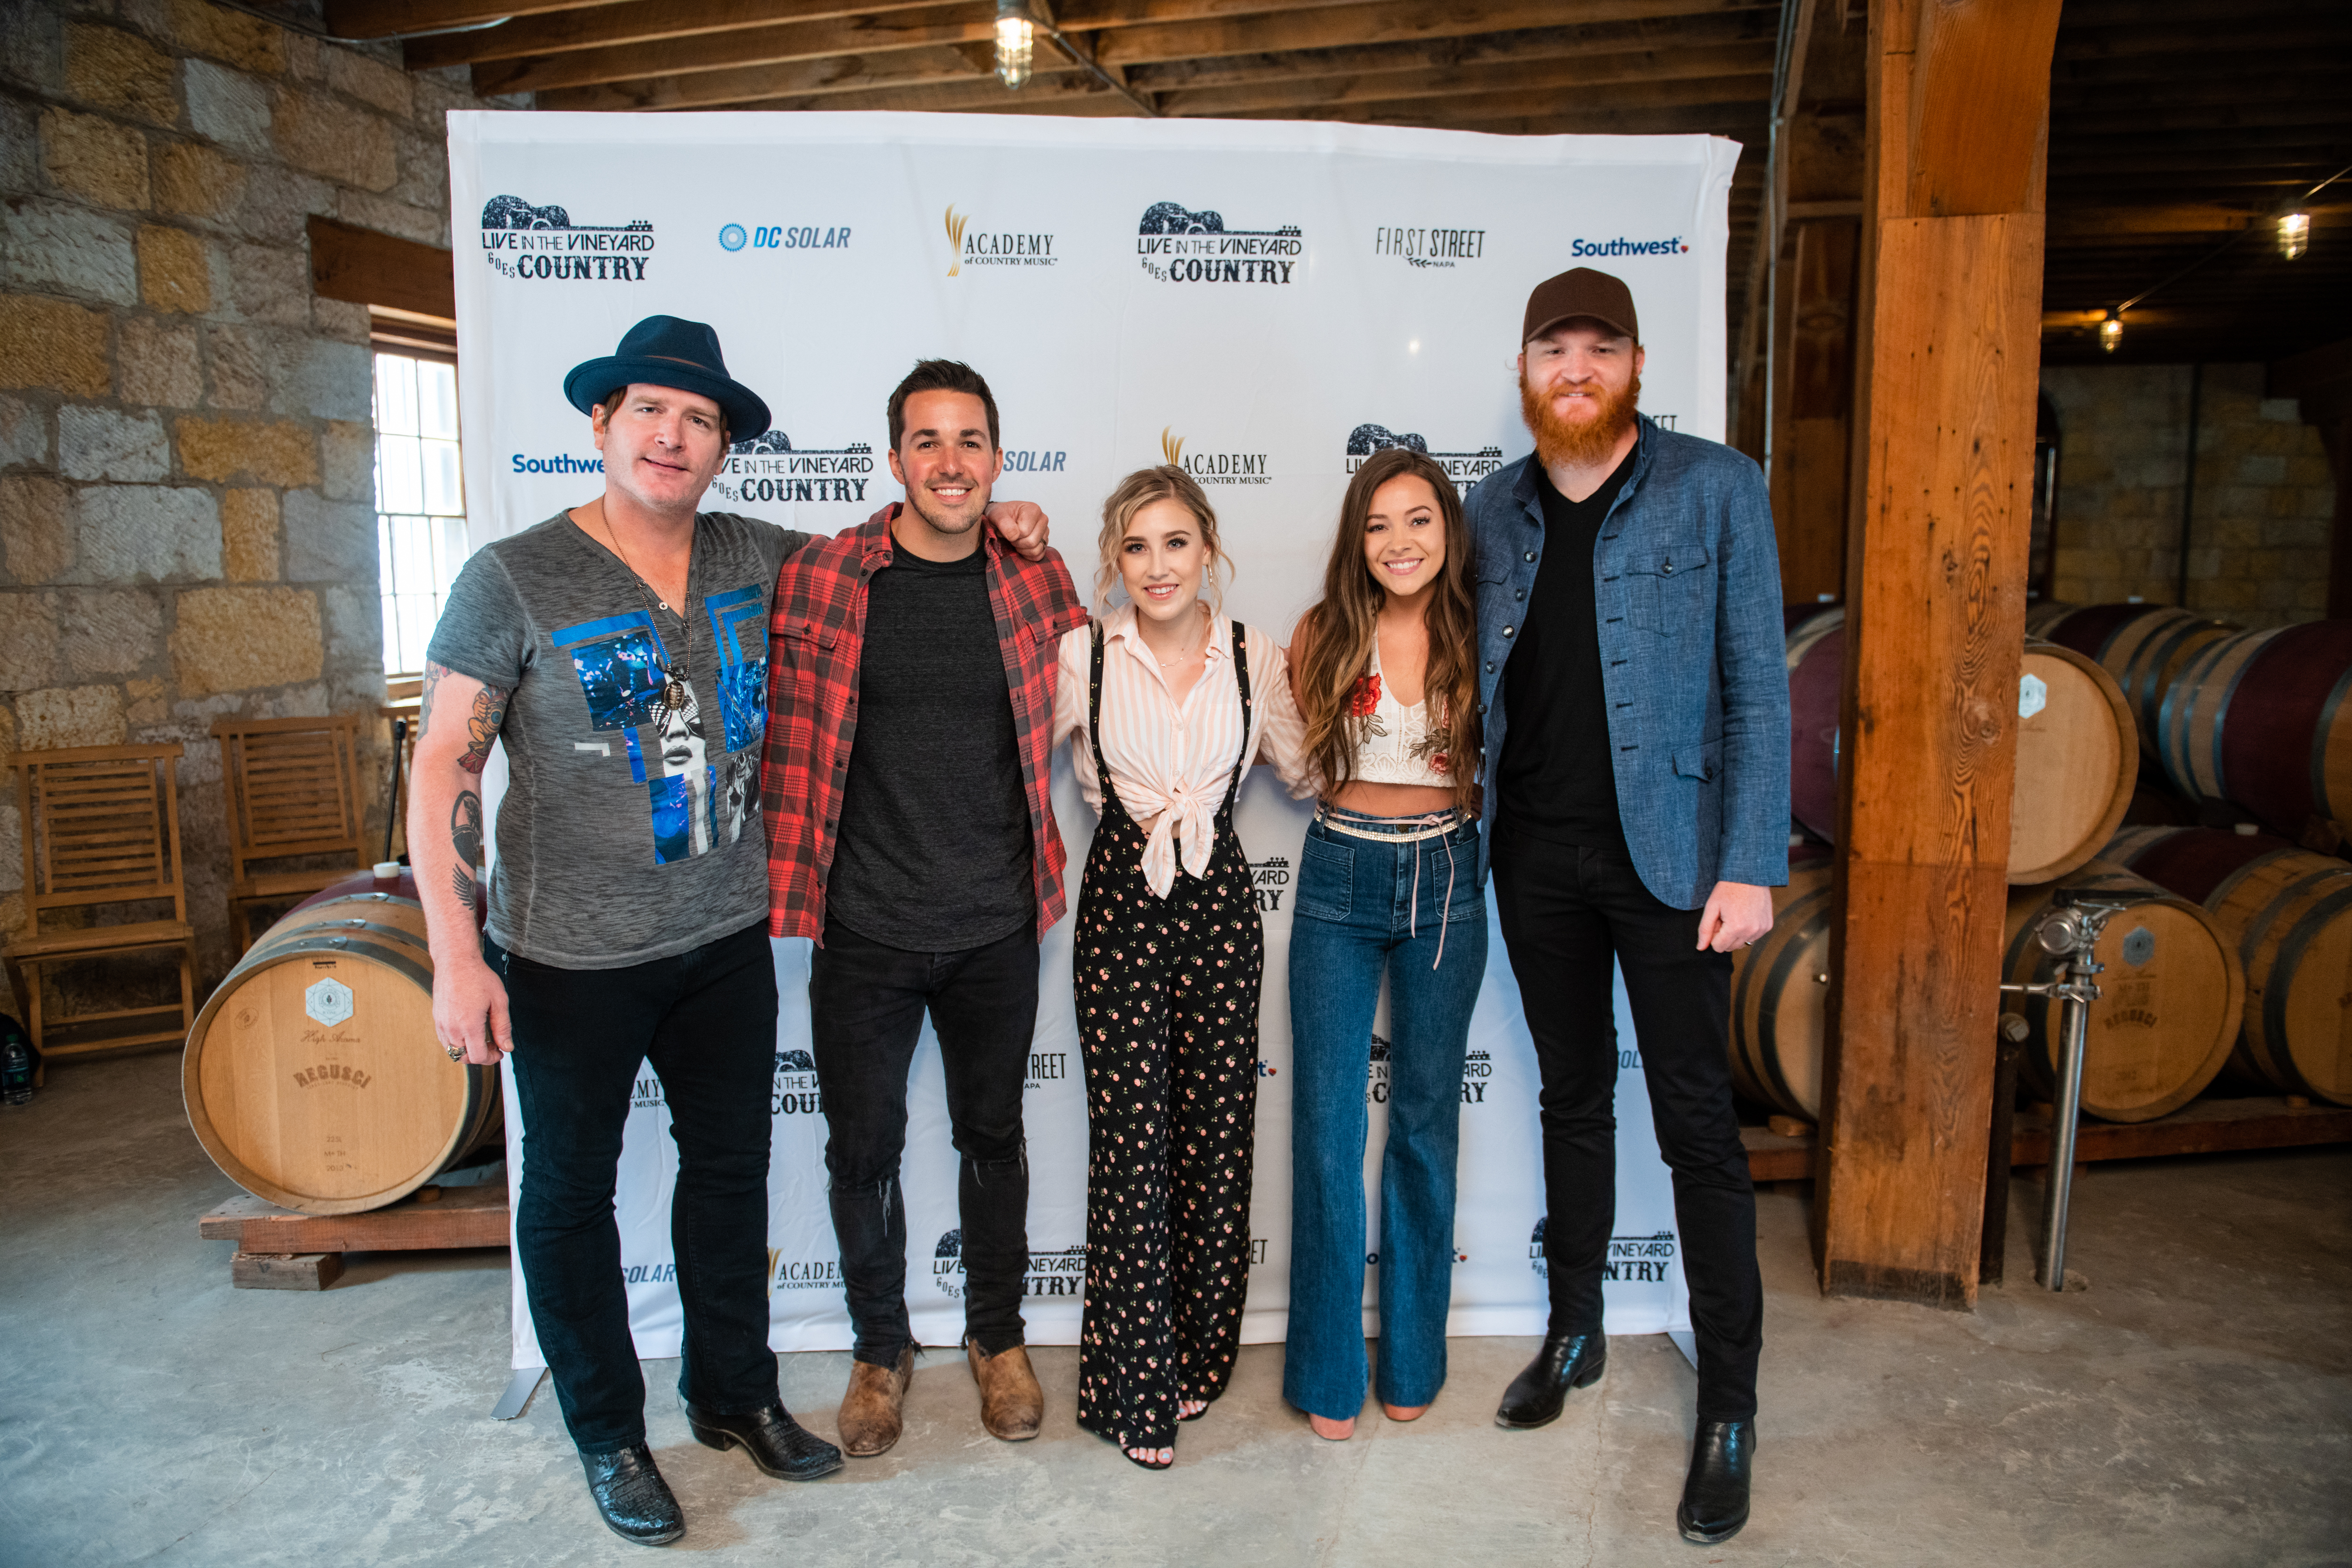 Live In The Vineyard Maddie and Tae Eric Paslay Cale Dodds Jerrod Niemann